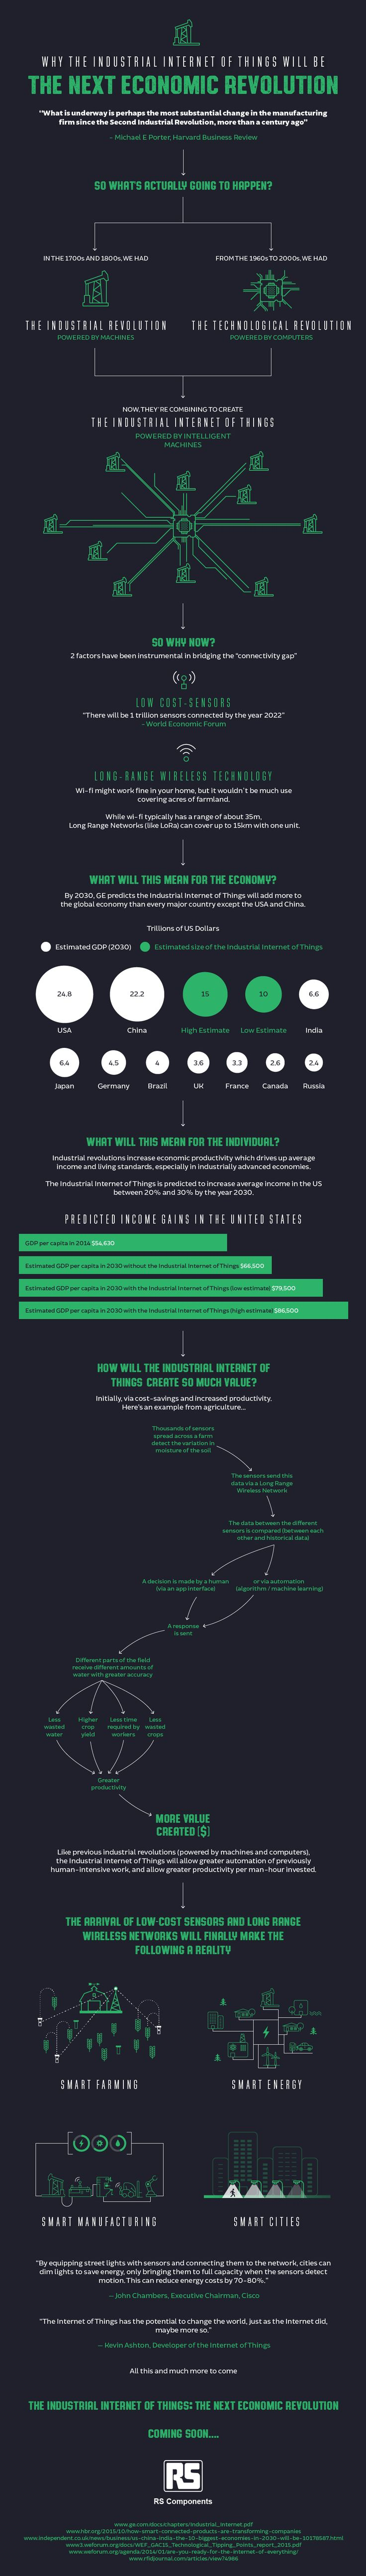 Why the Internet of Things Will be the Next Economic Revolution [Infographic] The development of the Internet of Things has completely changed the physical world making it safer and more convenient. The IoT is a wireless network of objects embedded with sensors to interact with each other. @tachyeonz